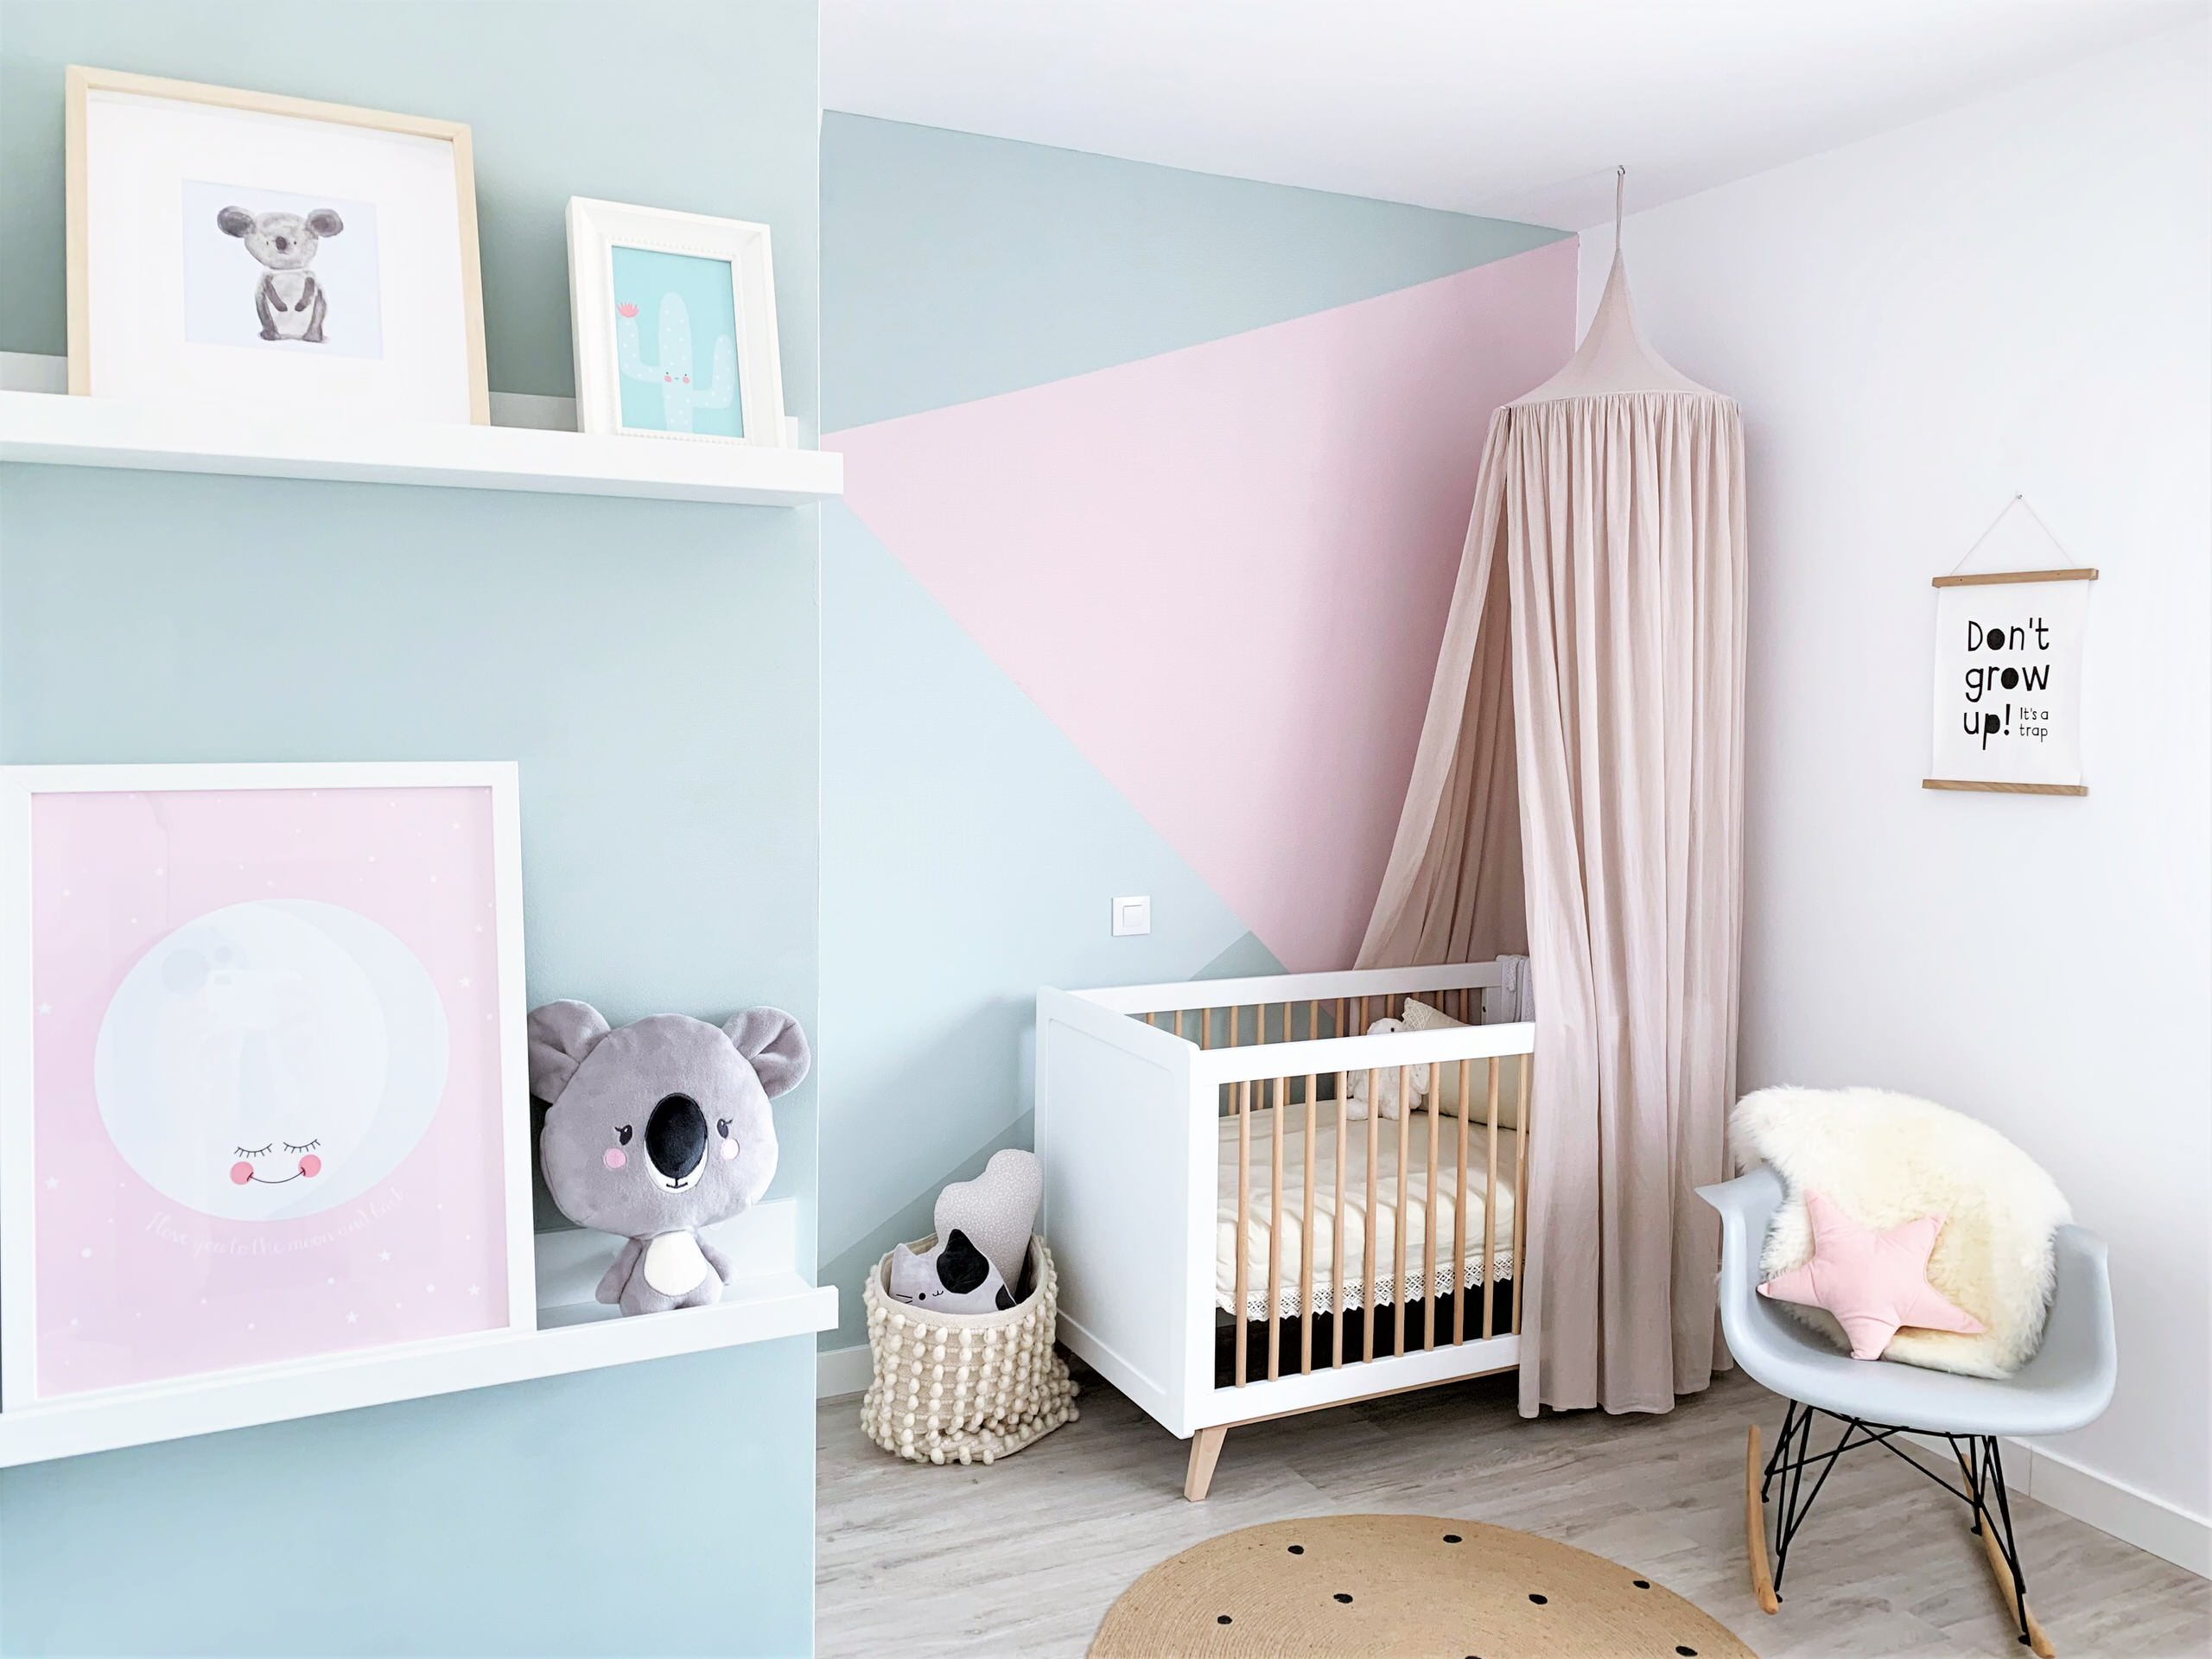 Blocks of pastel pink and blue make a big difference to the backdrop of this modern nursery